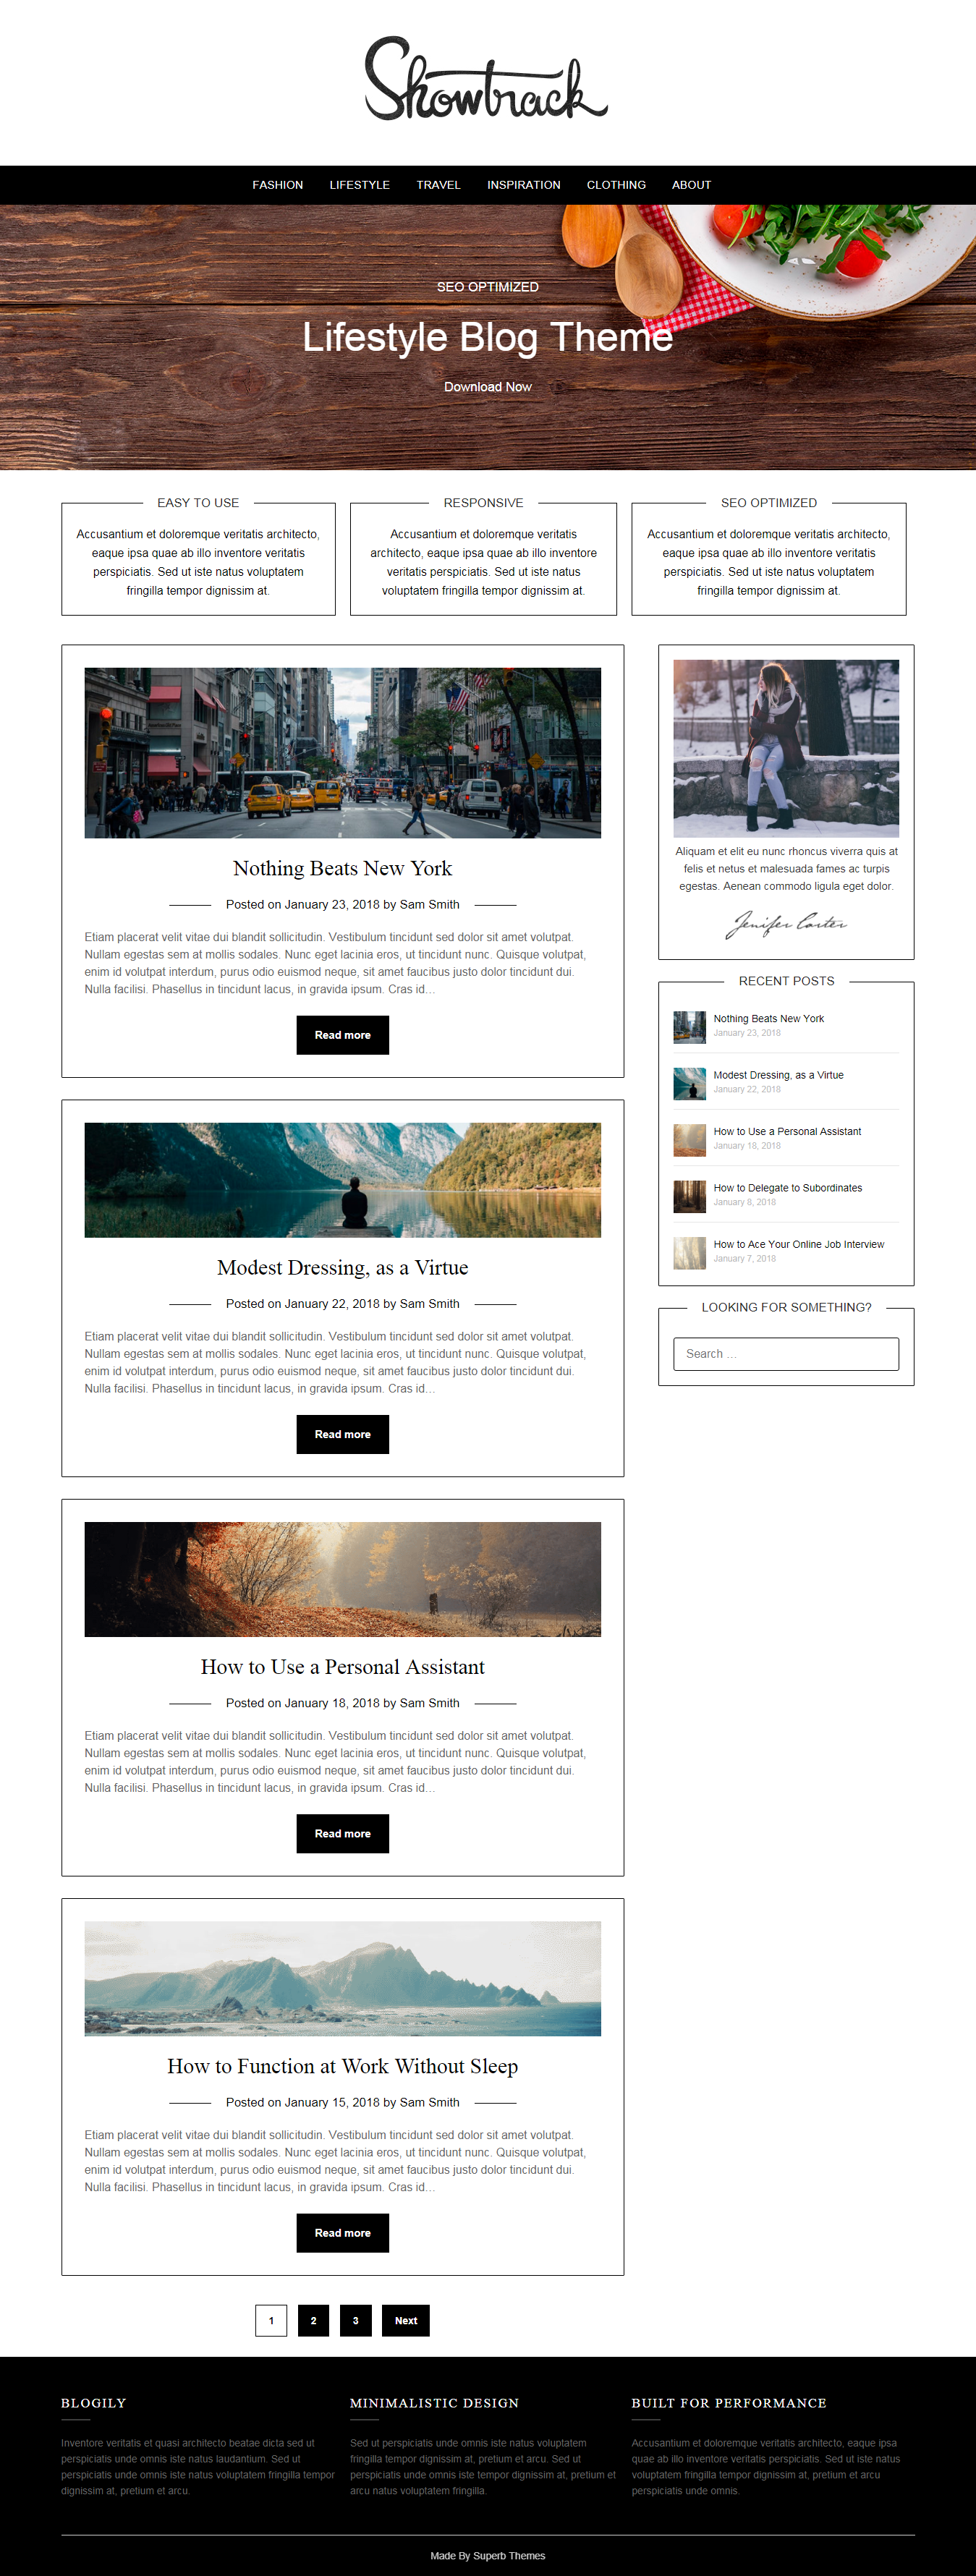 LifestylePress - Best Free Lifestyle WordPress Theme